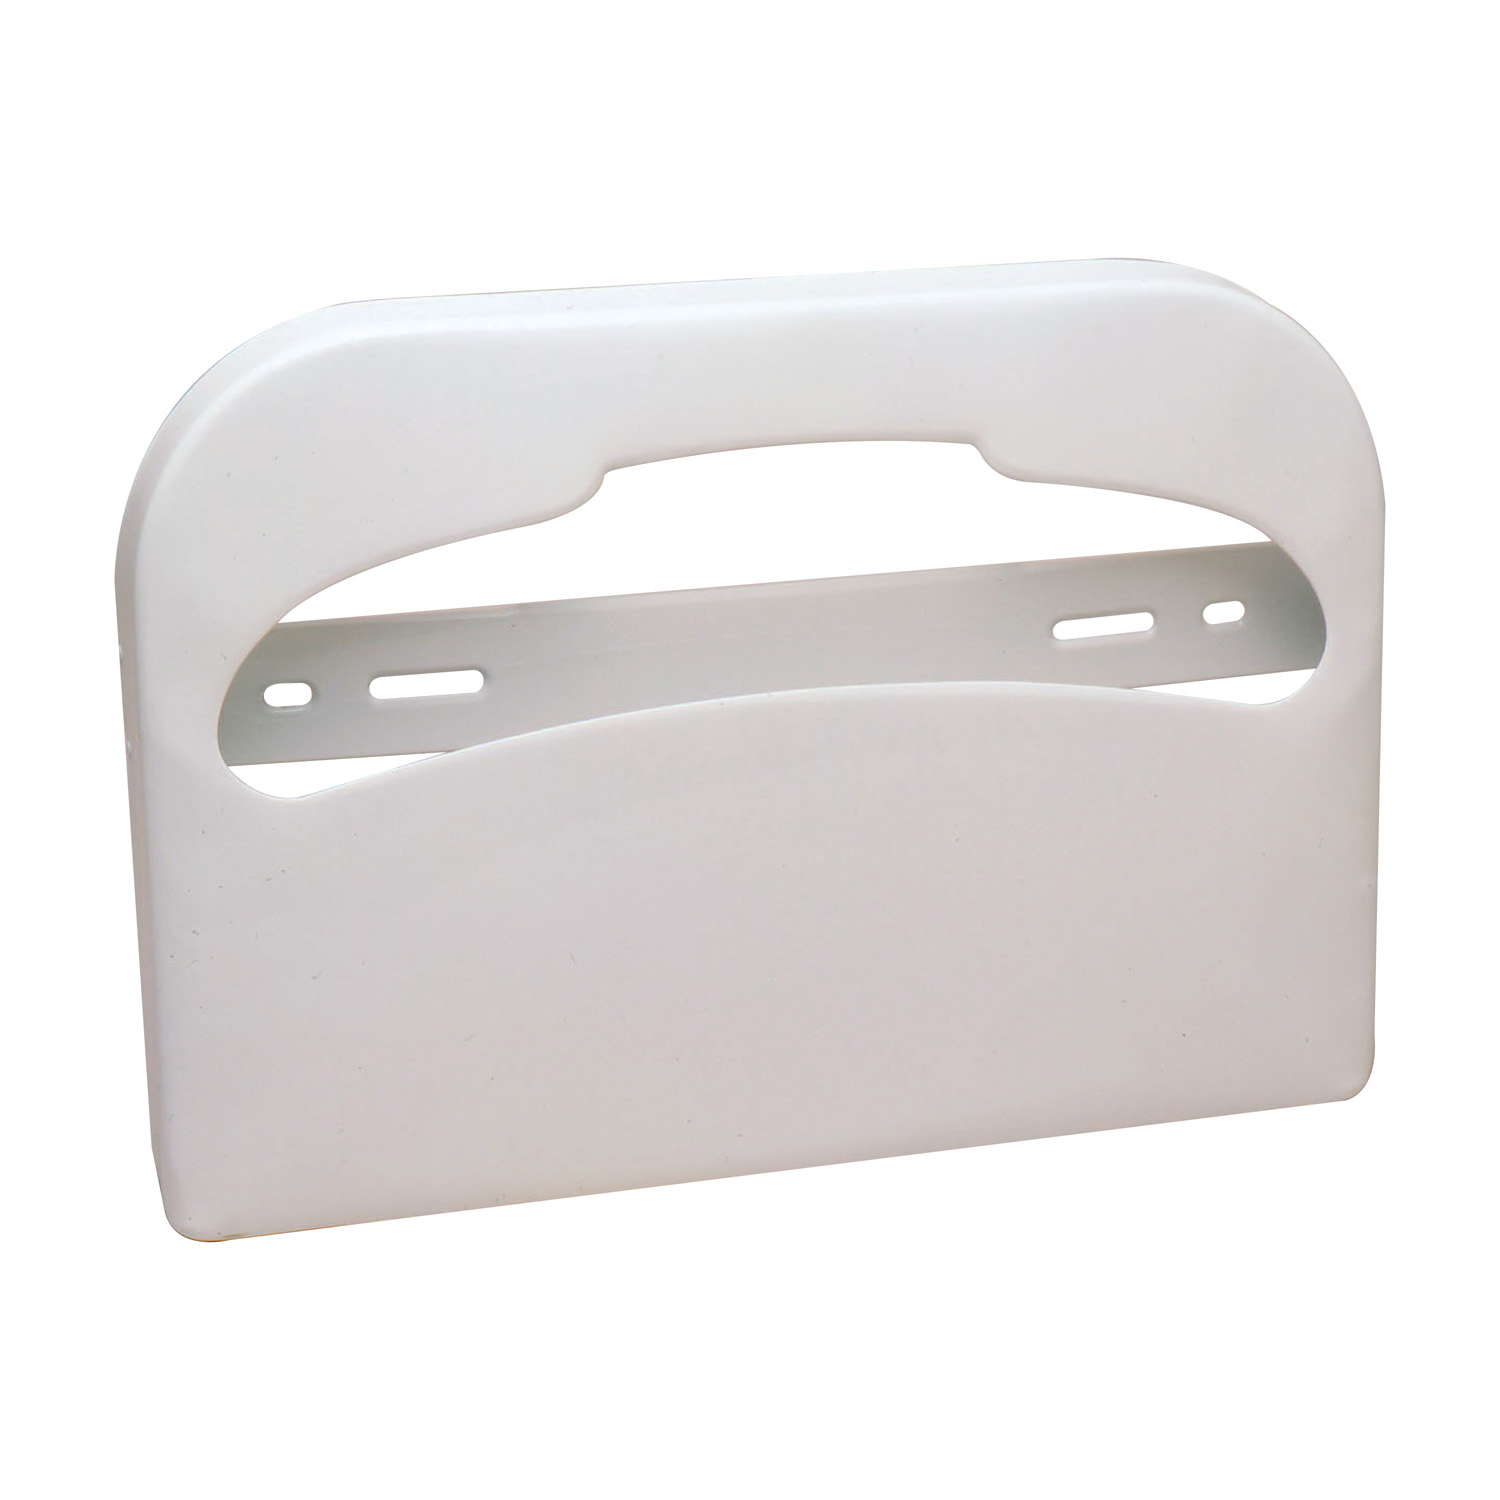 Impact Products 25131800 toilet seat cover dispenser